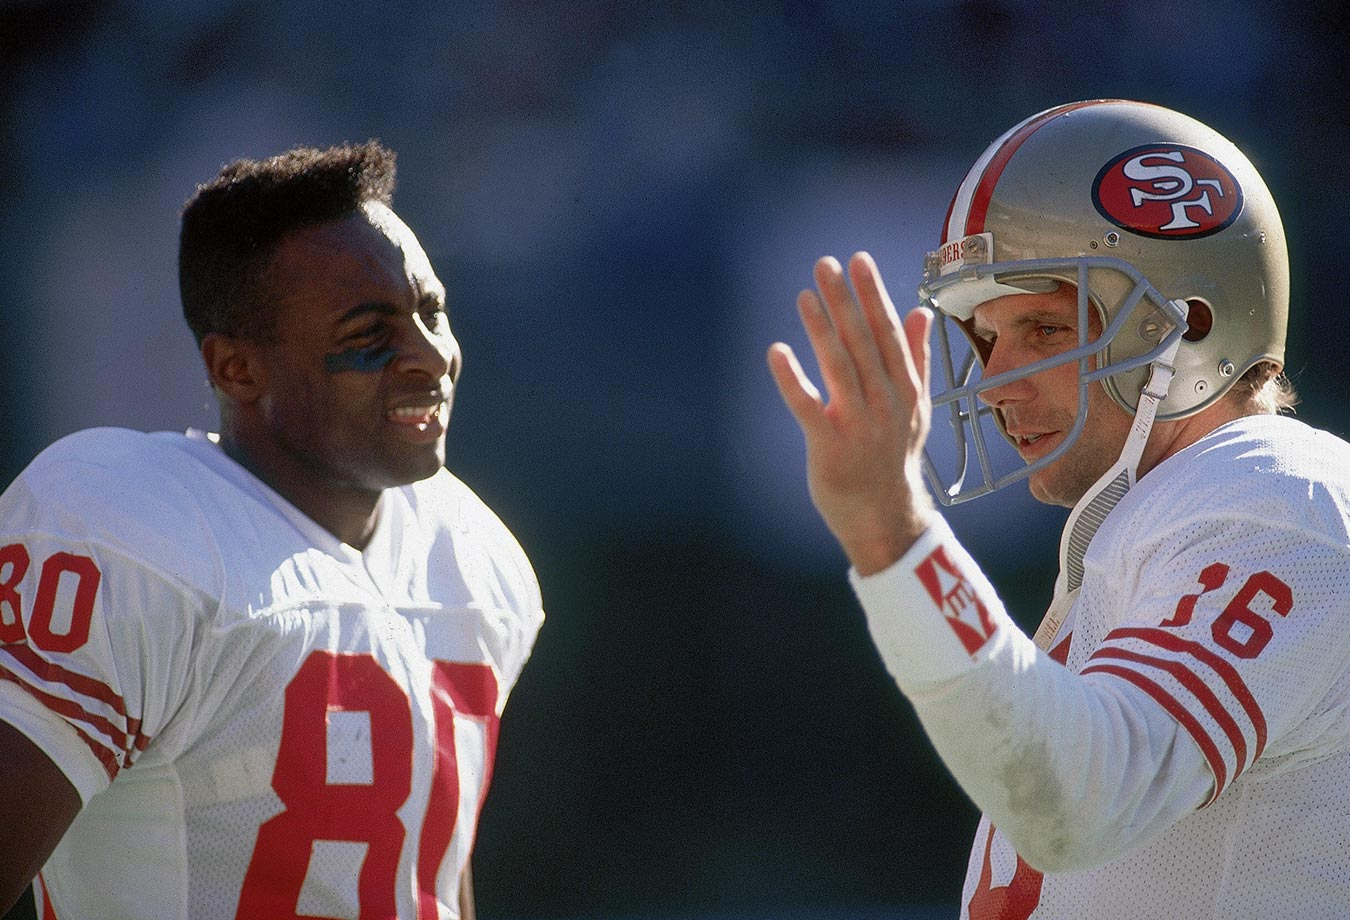 Dec. 9, 1990 — San Francisco 49ers vs. Cincinnati Bengals